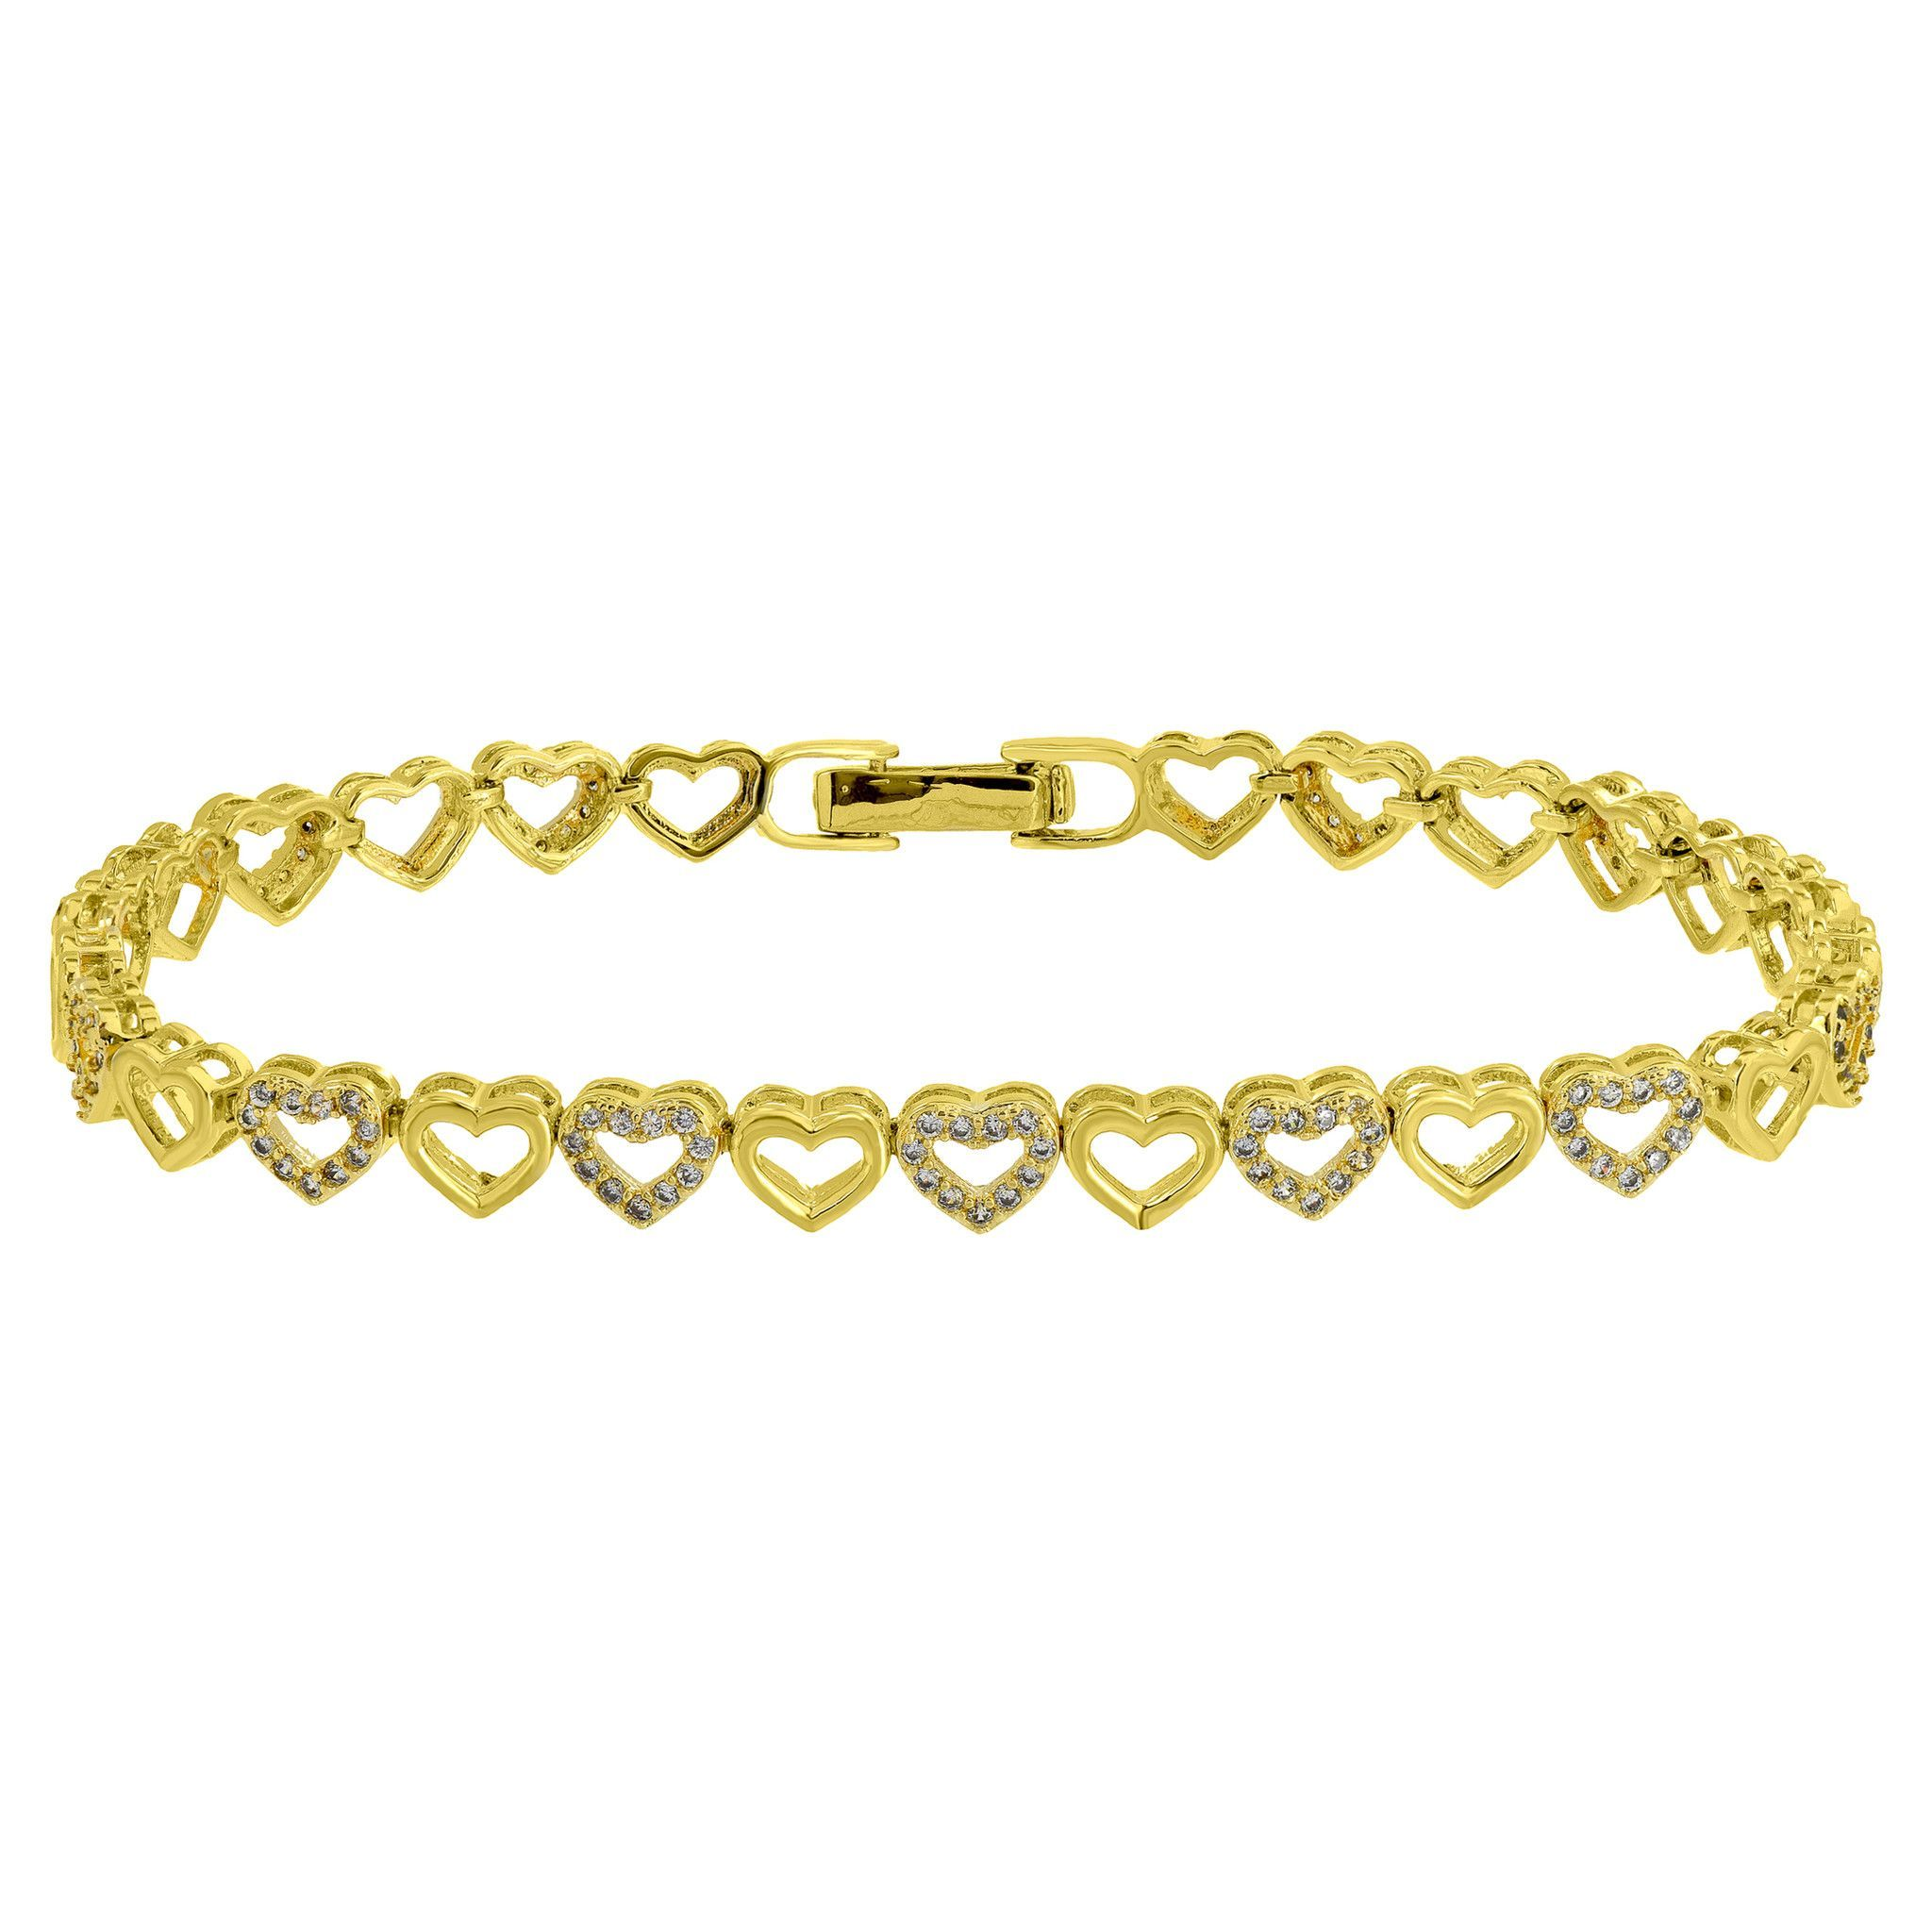 designs curve design chain product double jewelry handcrafted bracelet gold modern